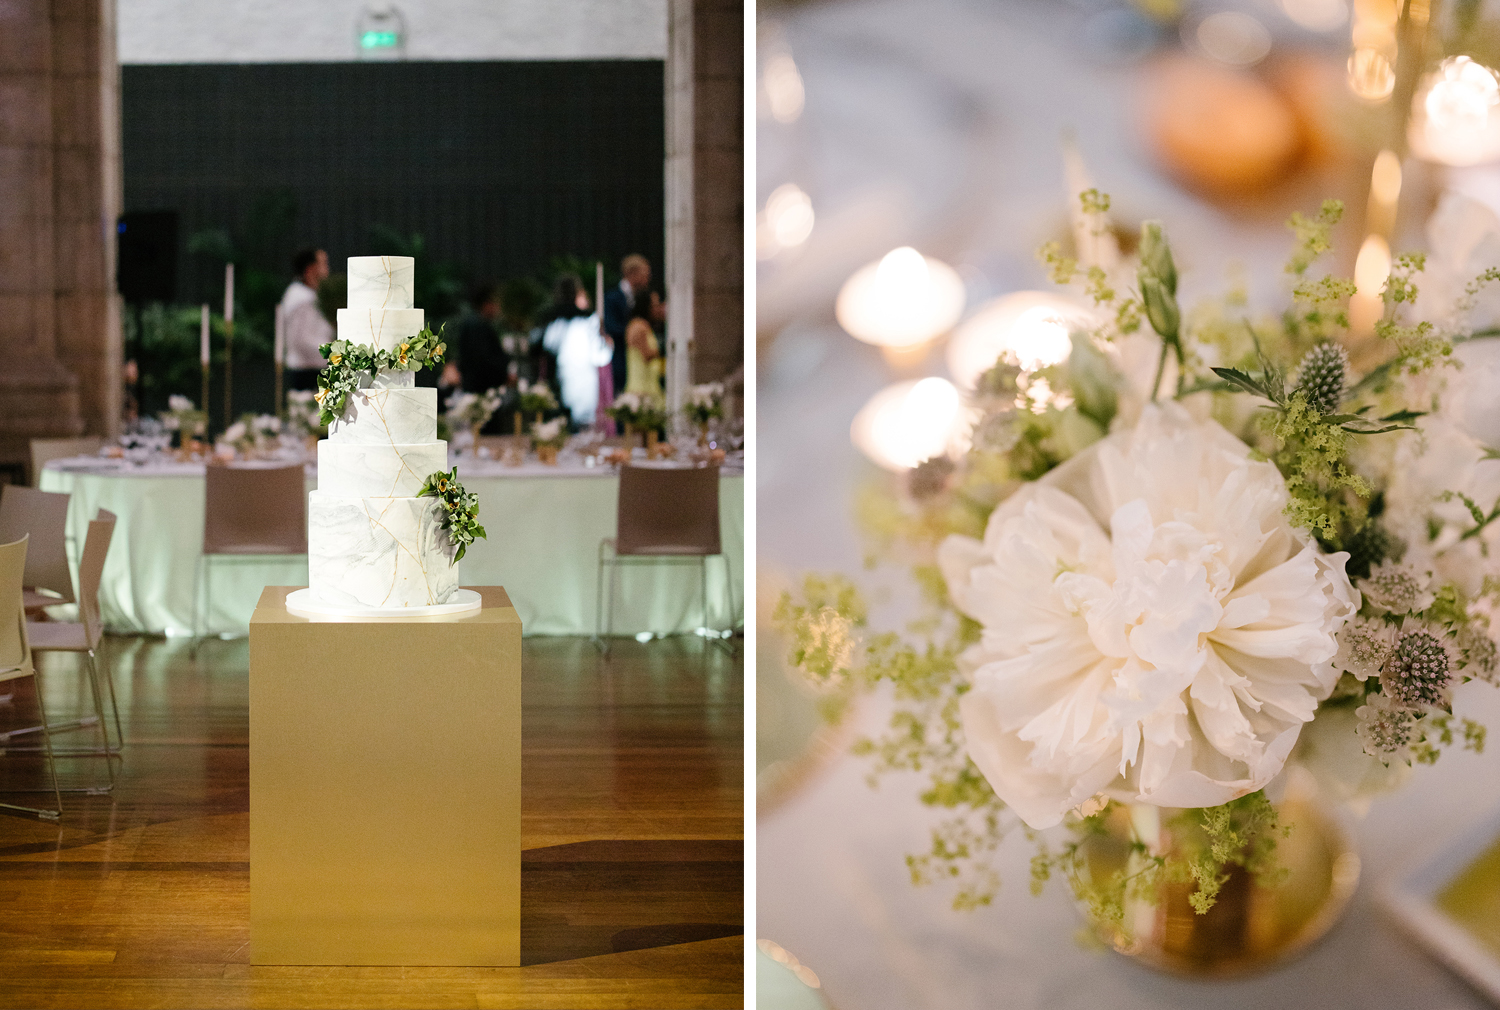 Details of the wedding decoration